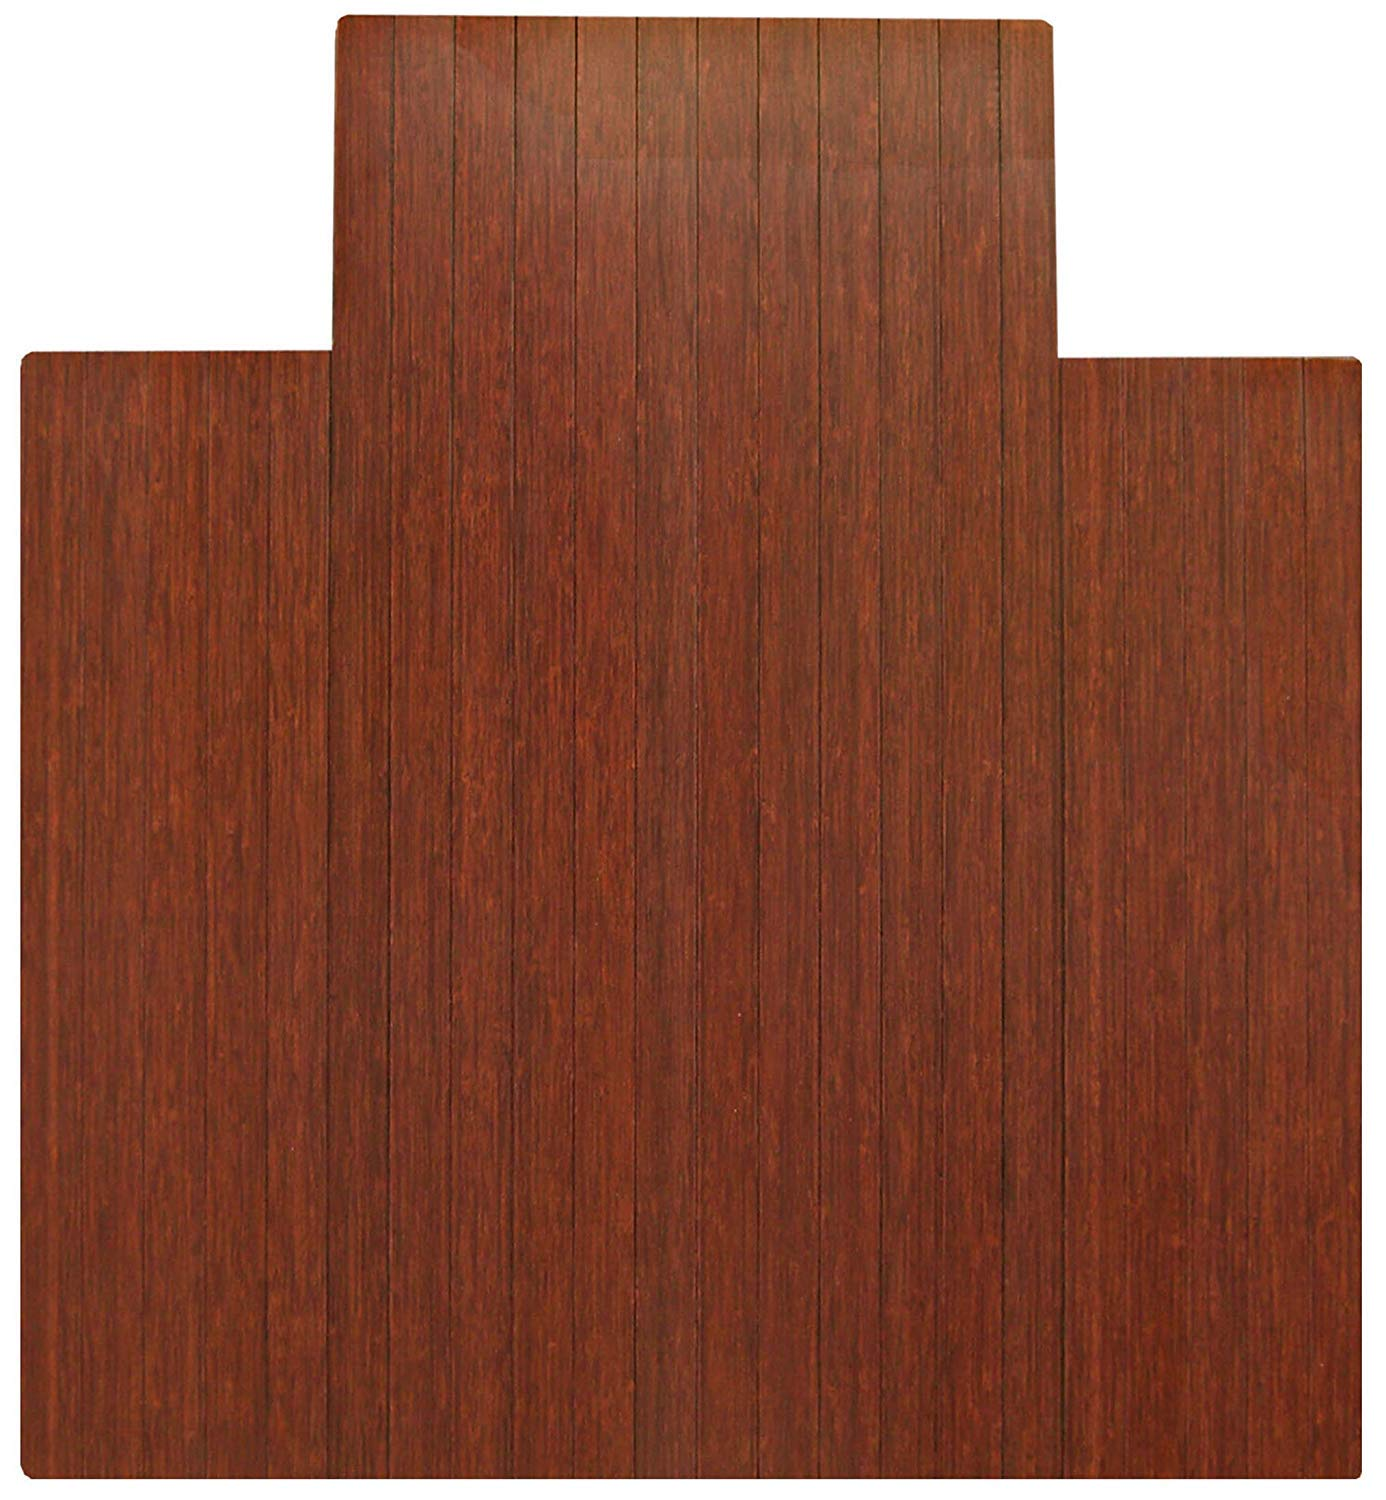 """Anji Mountain Bamboo Roll-Up Chair Mat with Lip, Dark Cherry, 44 x 52"""", 5mm Thick"""